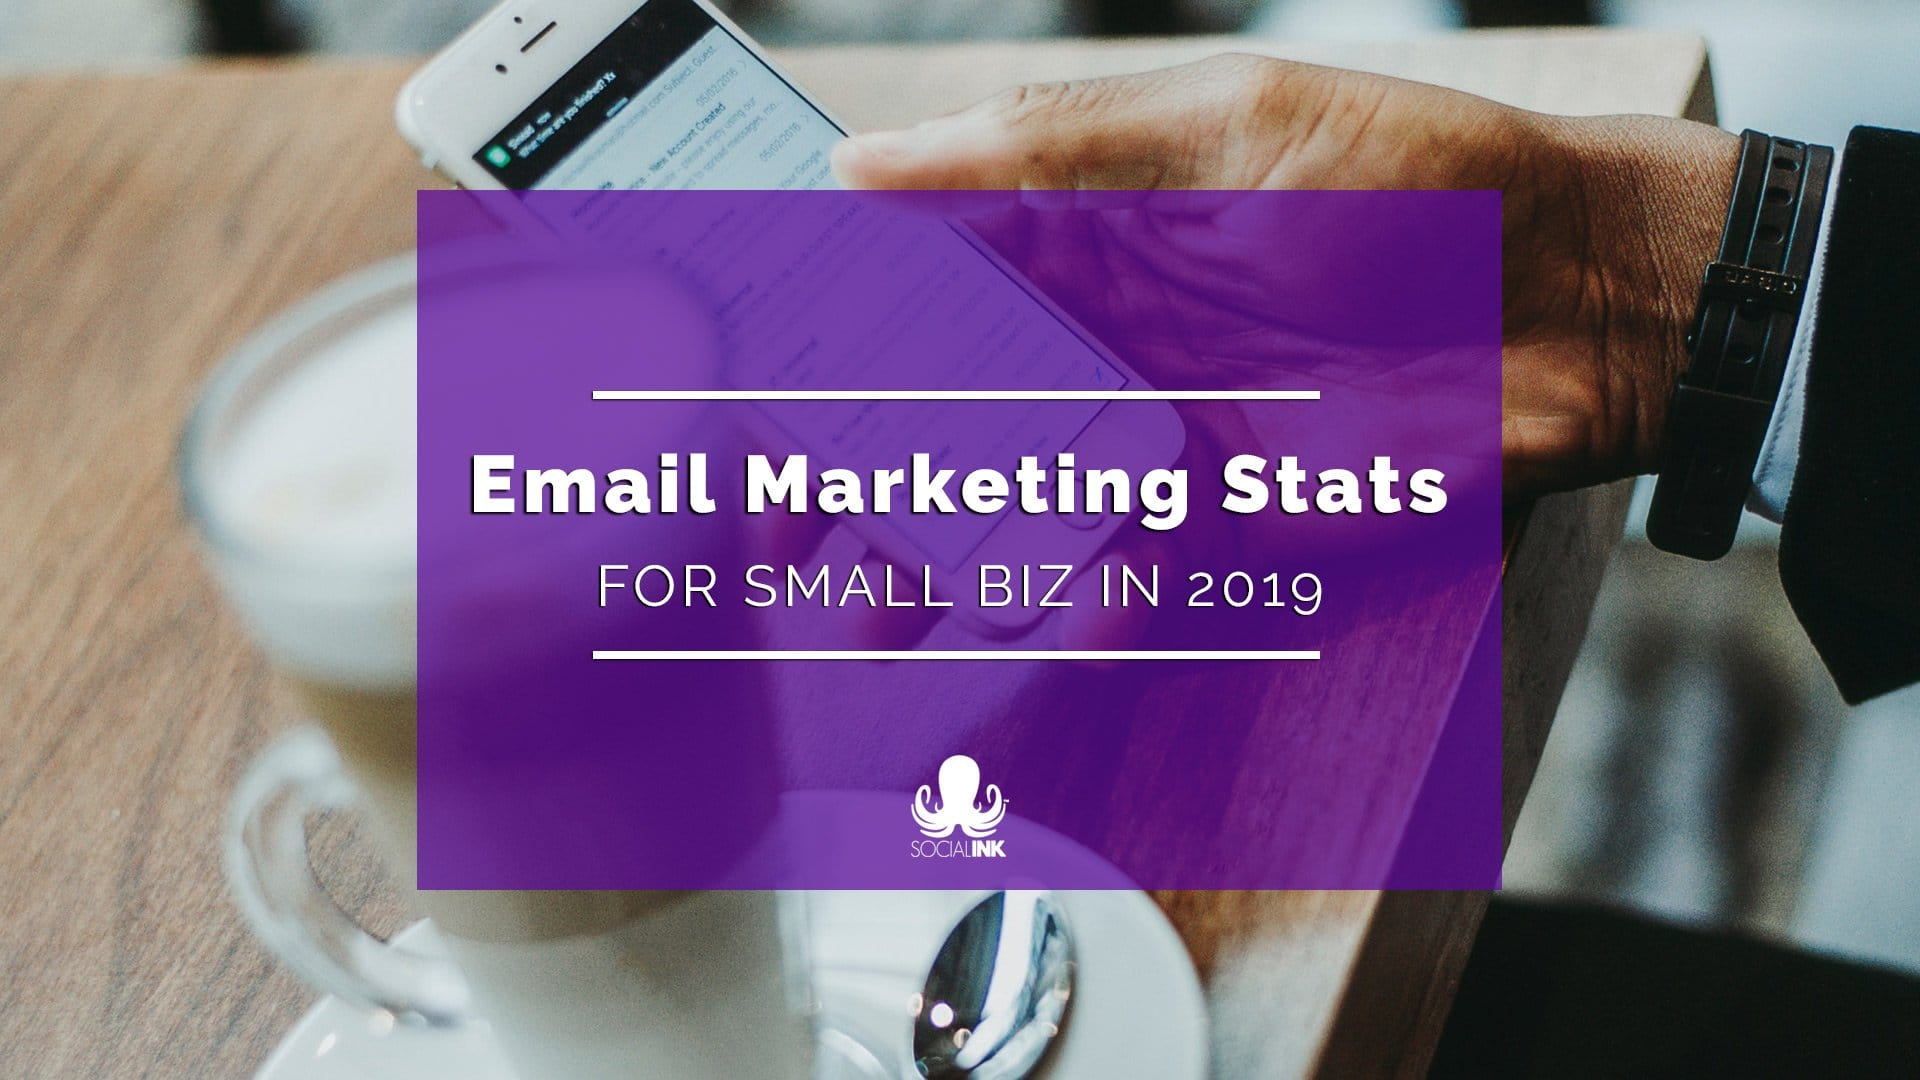 Why Email Marketing Matters: Statistics Every Small Business Should Know